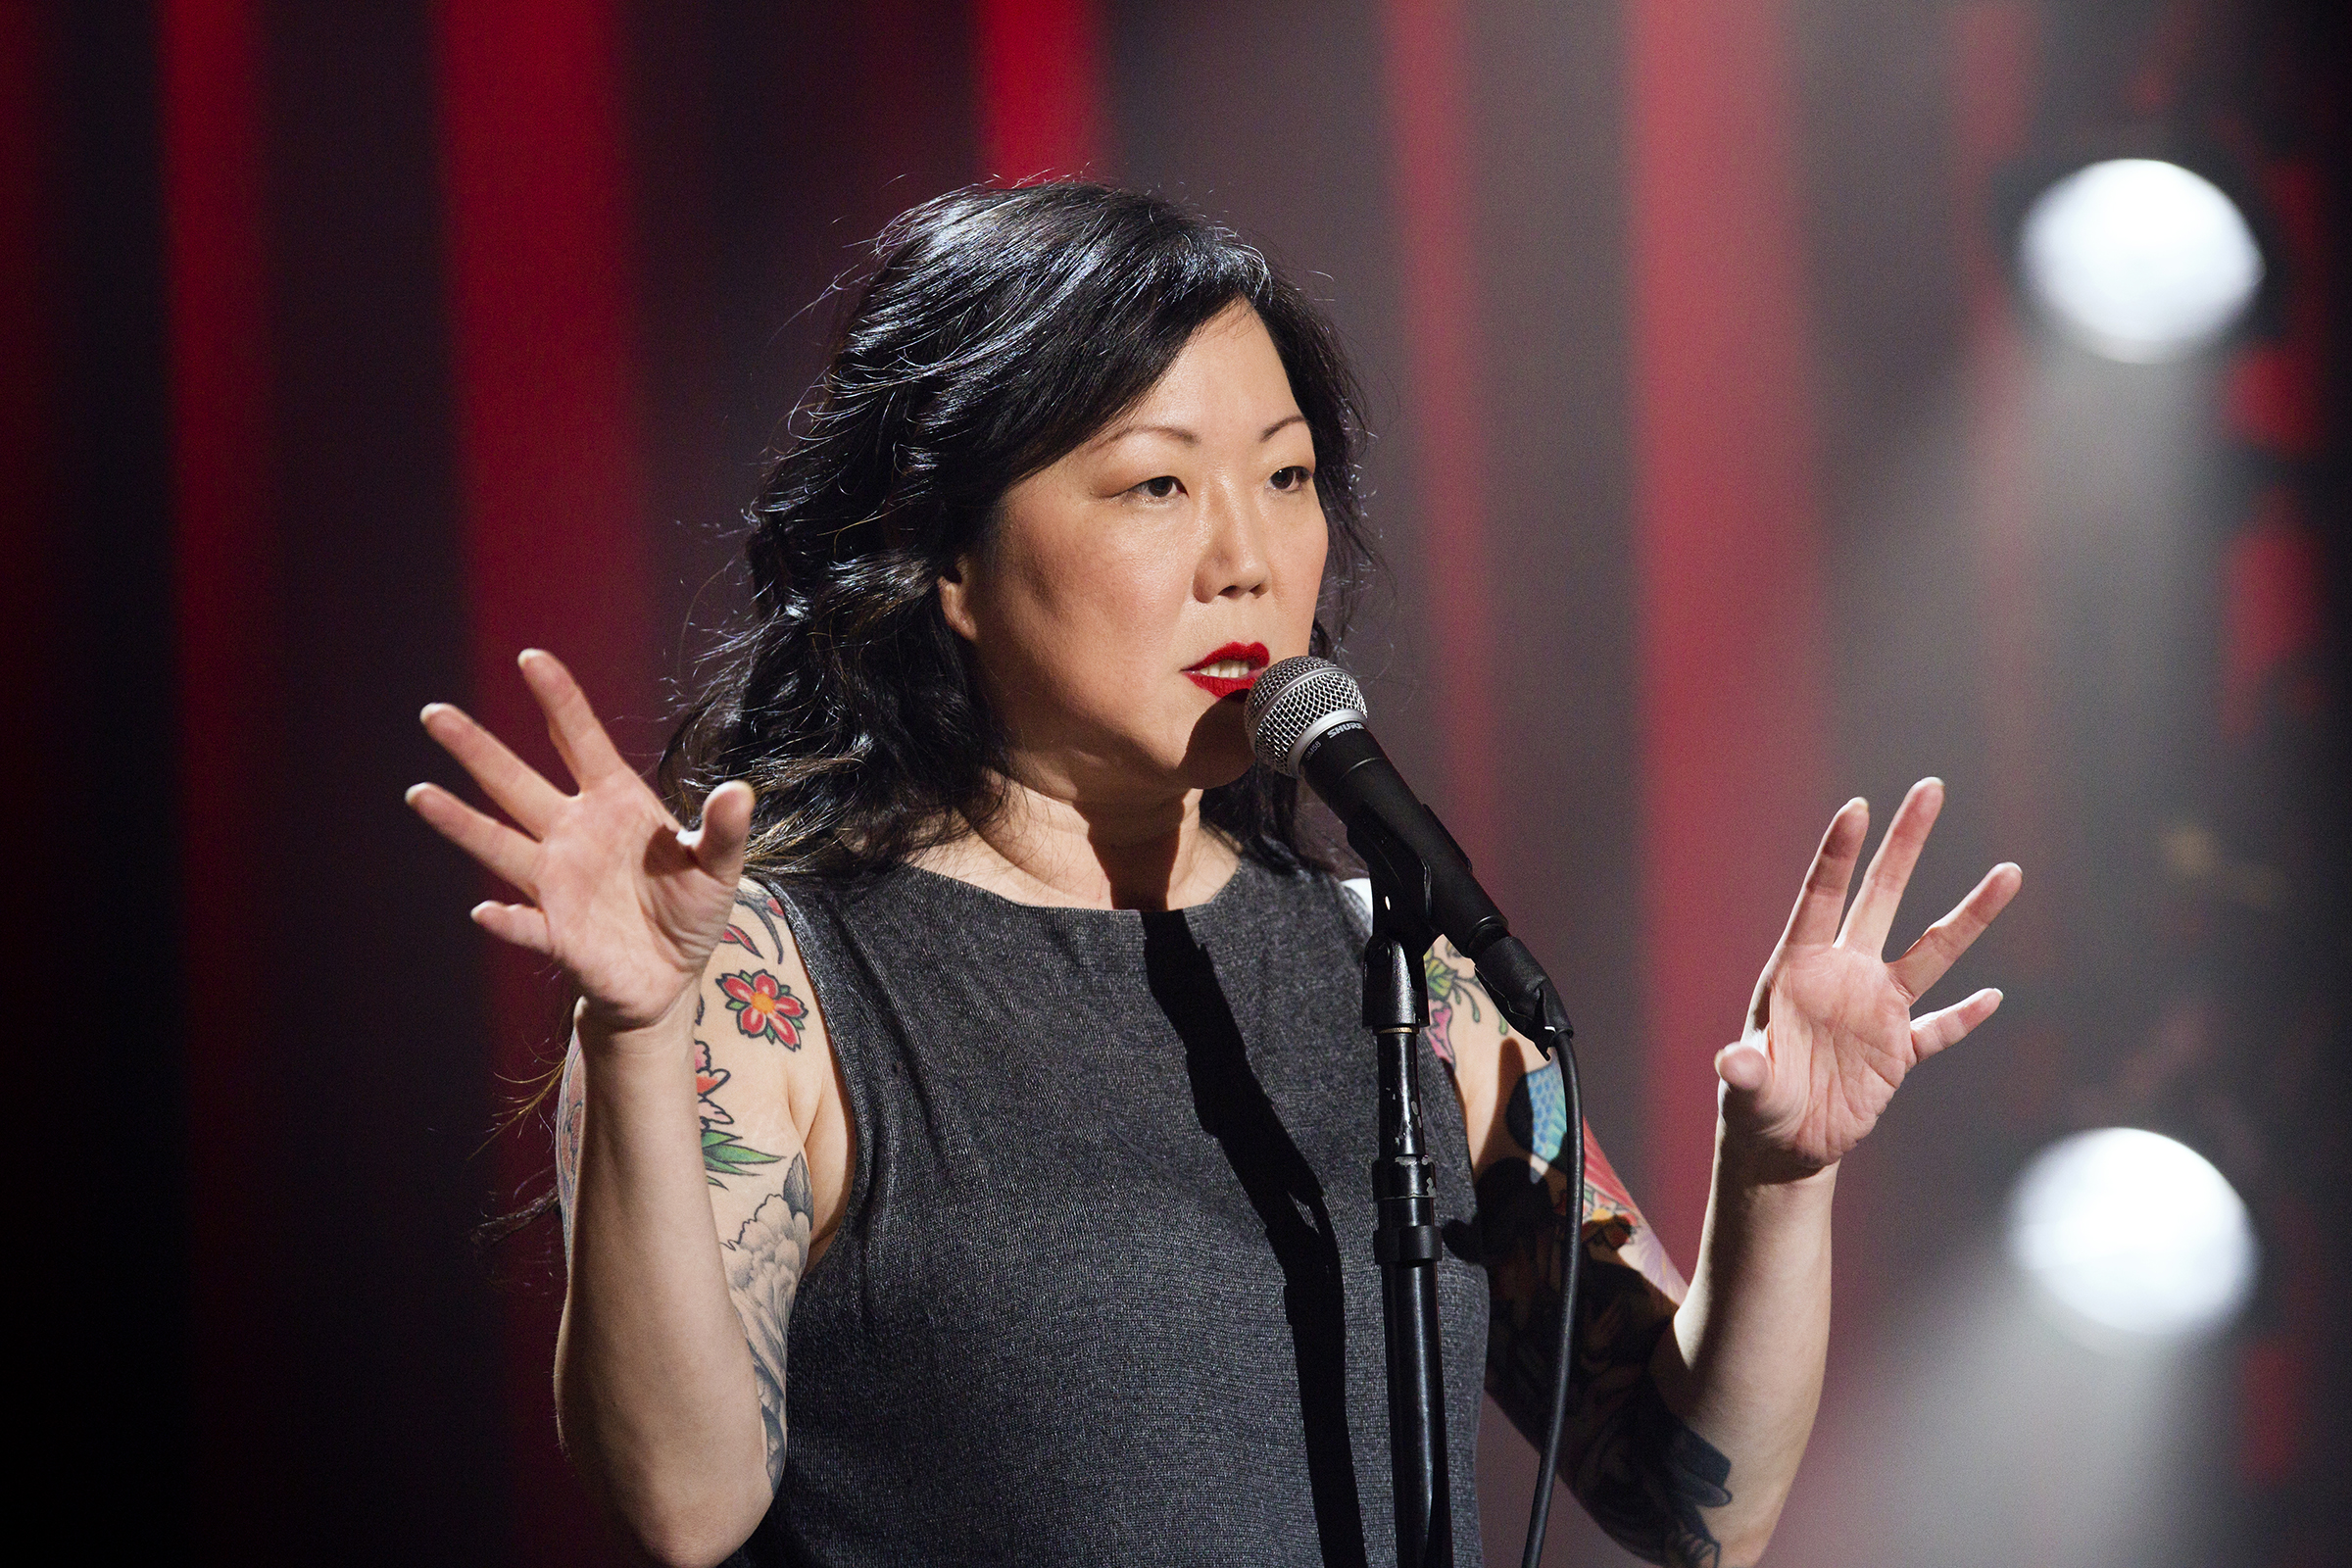 Margaret Cho live at the at the Gramercy Theater in New York City in Margaret Cho: psyCHO.